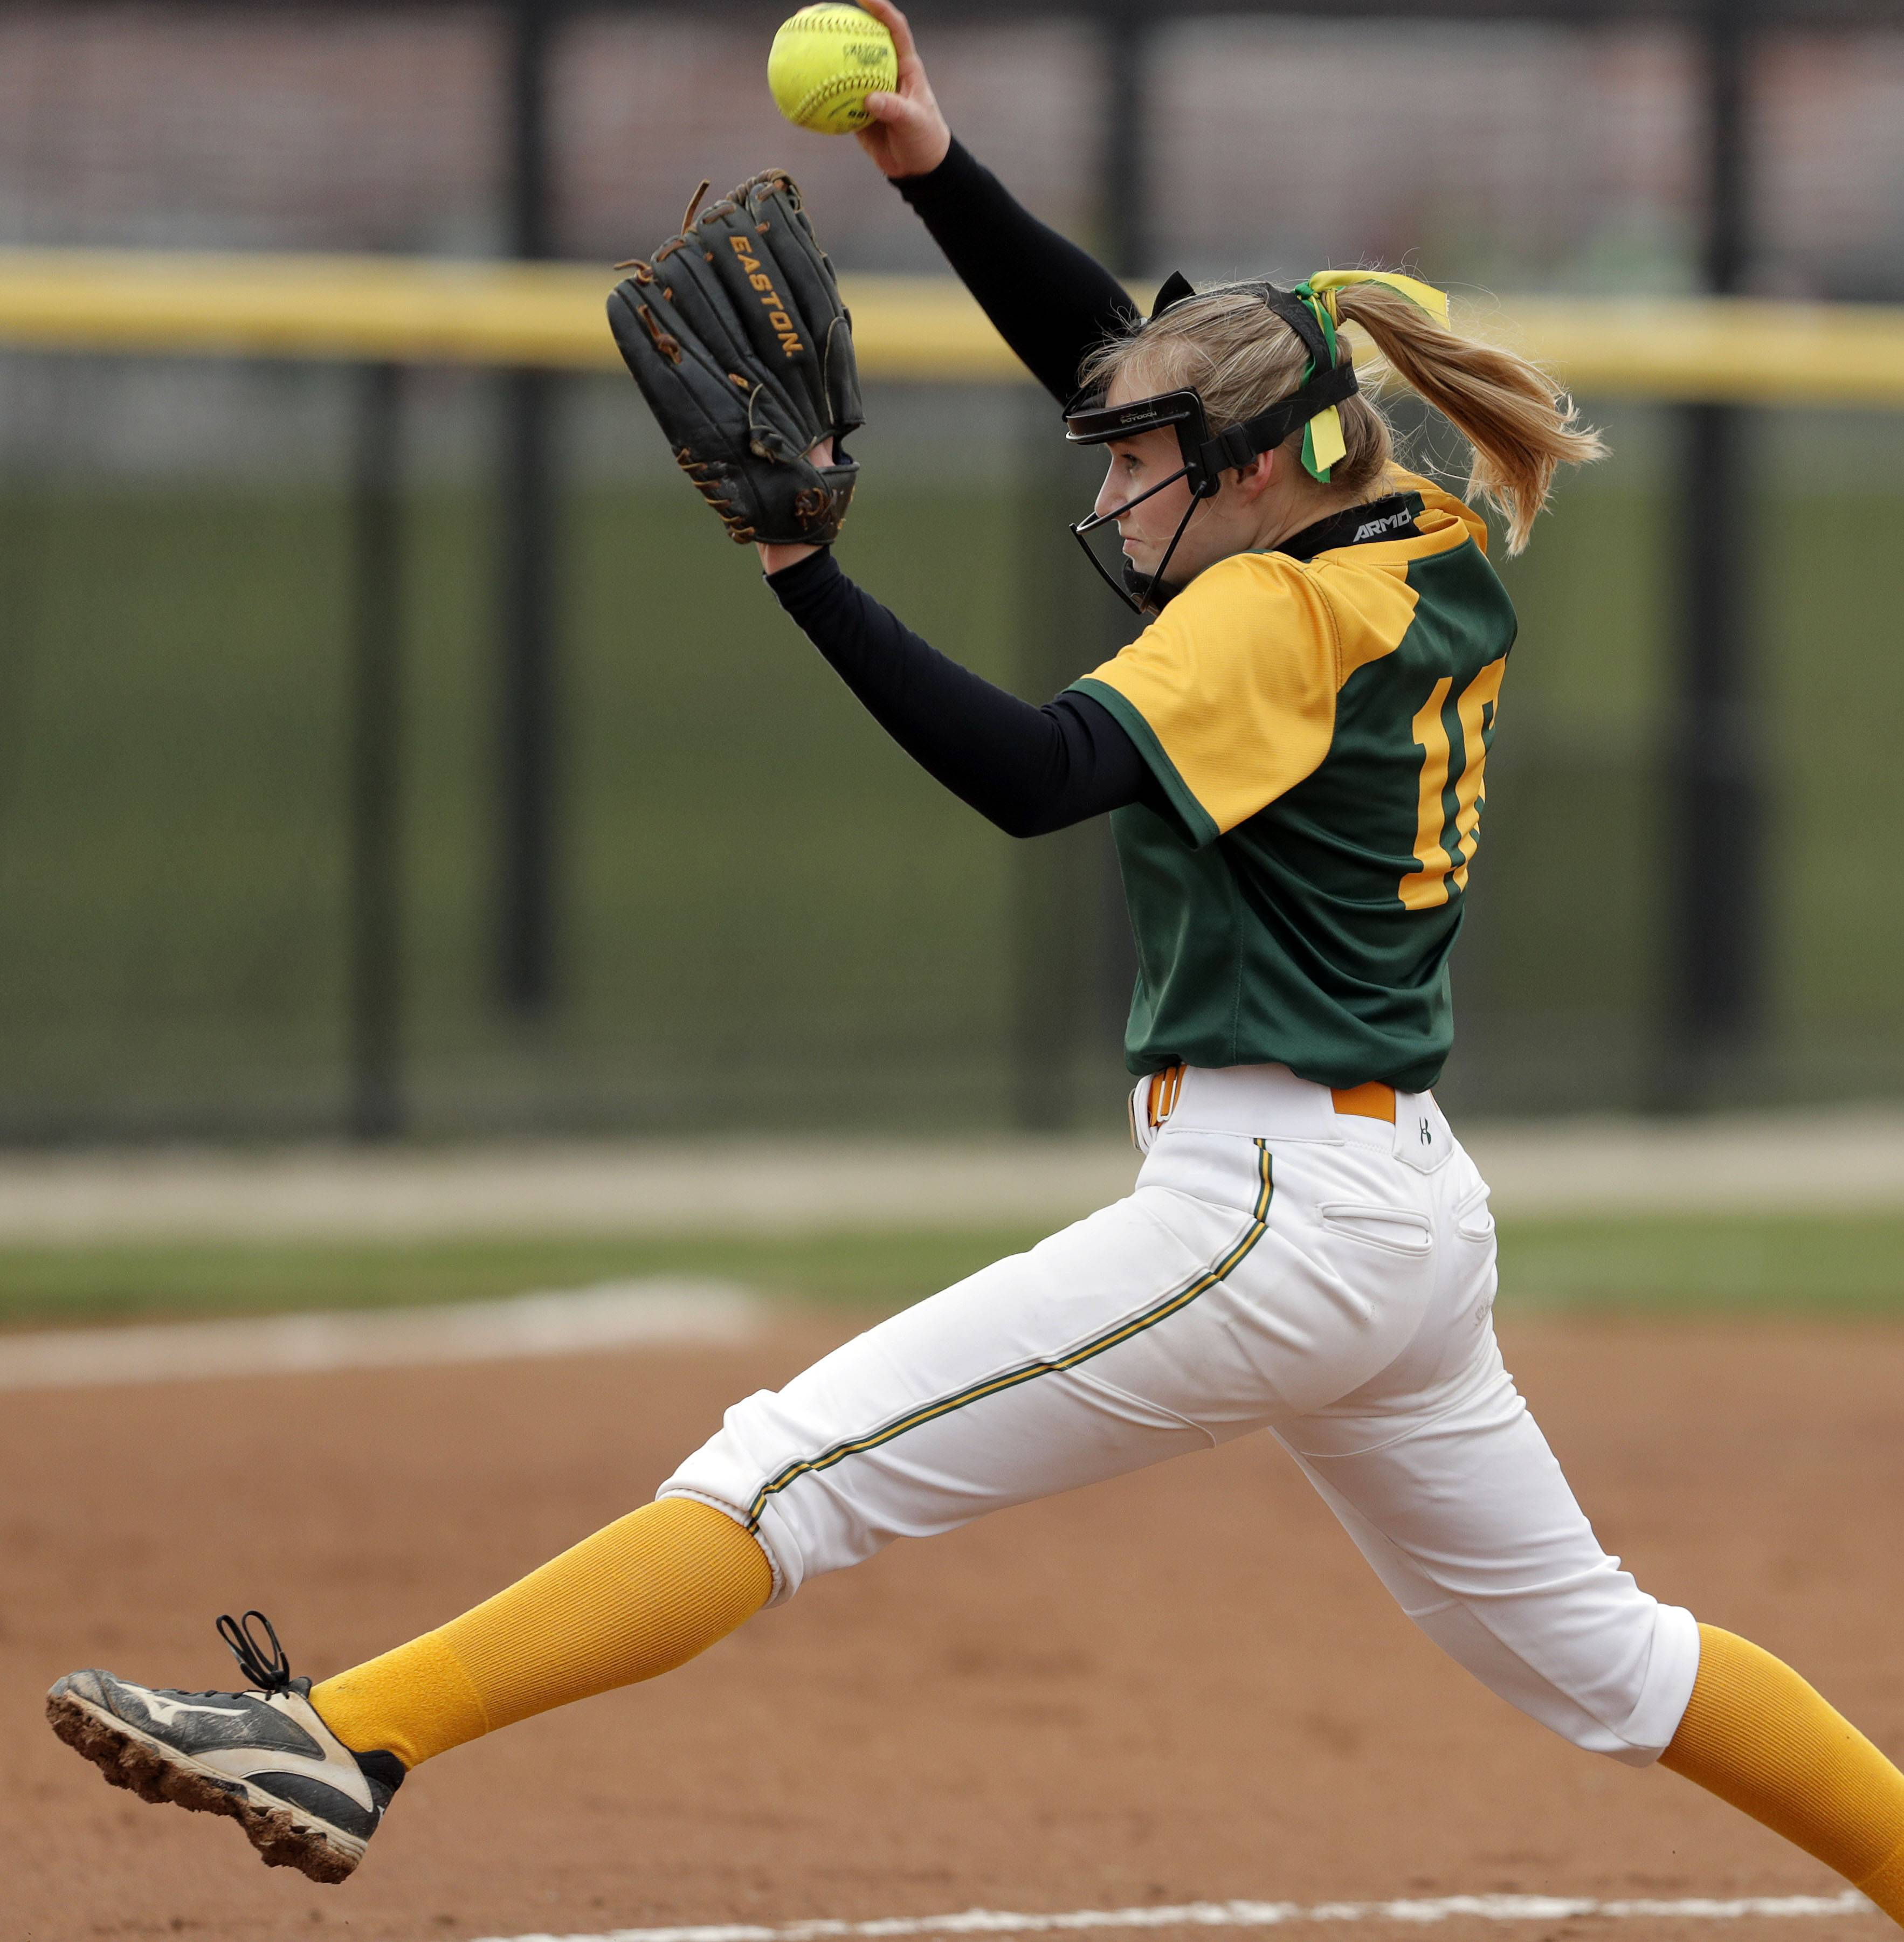 Stevenson's Riley Housinger pitches during their game Wednesday at Grant High School in Fox Lake.